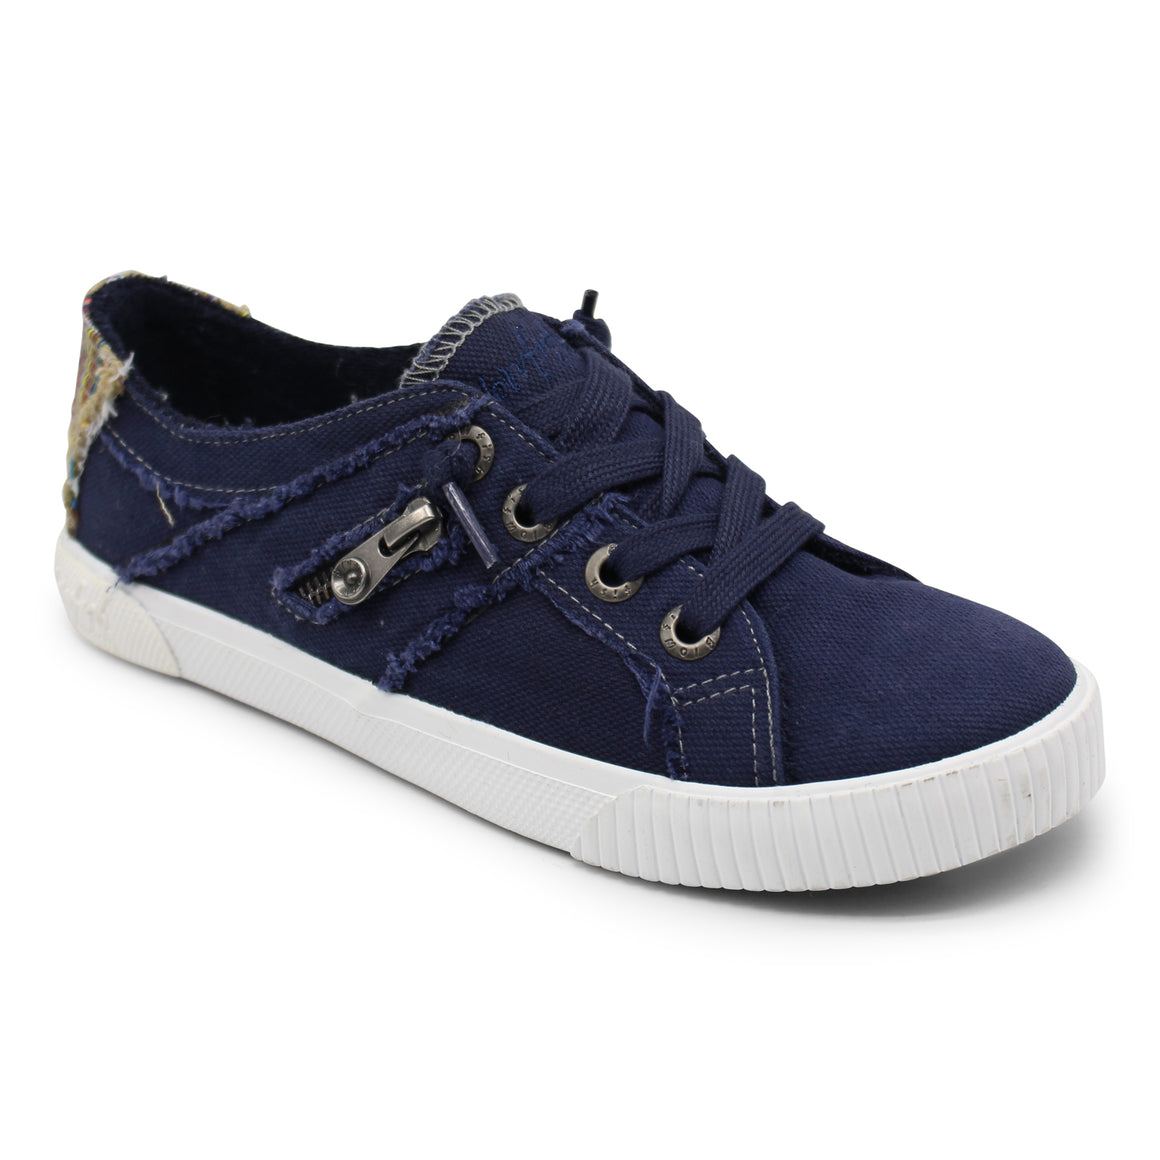 Blowfish Women's Fruit Lace Up Shoe ZS-0269 - Pure Navy